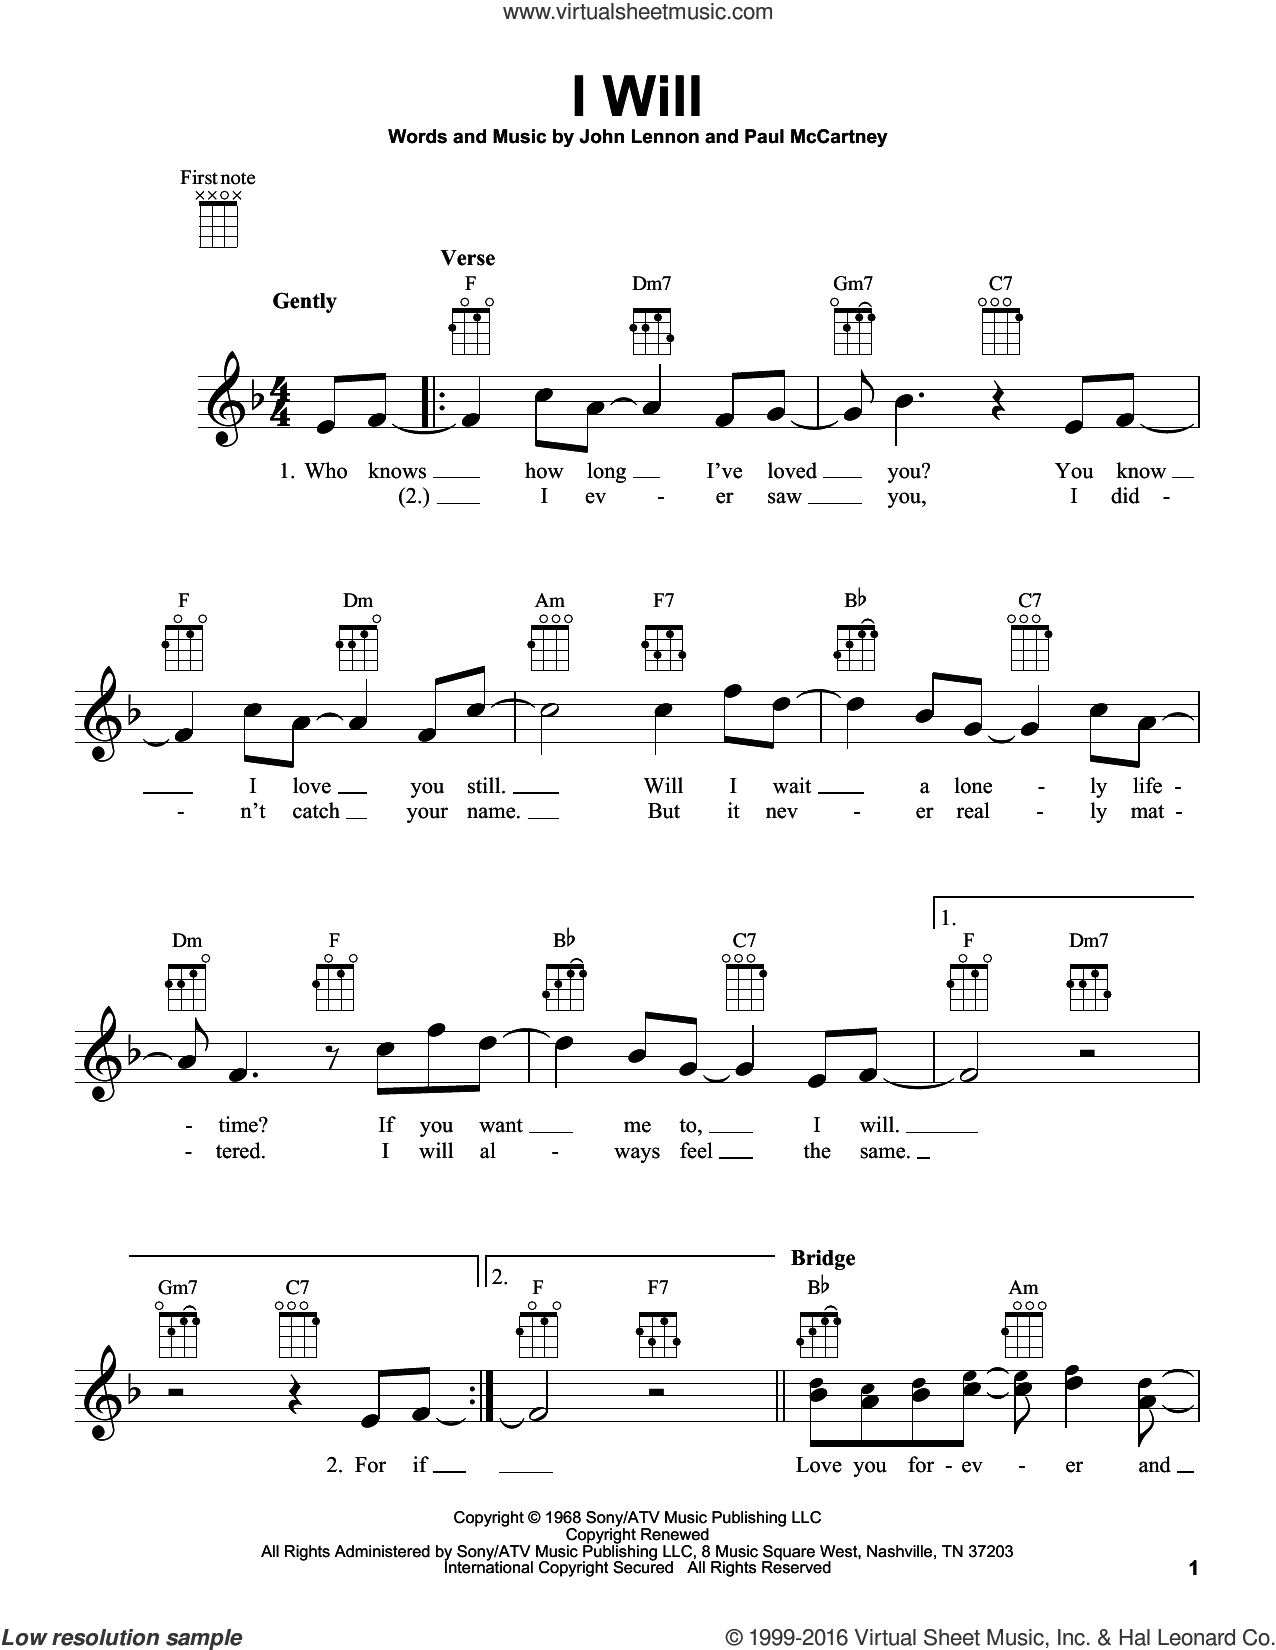 I Will sheet music for ukulele by Paul McCartney, John Lennon and The Beatles. Score Image Preview.